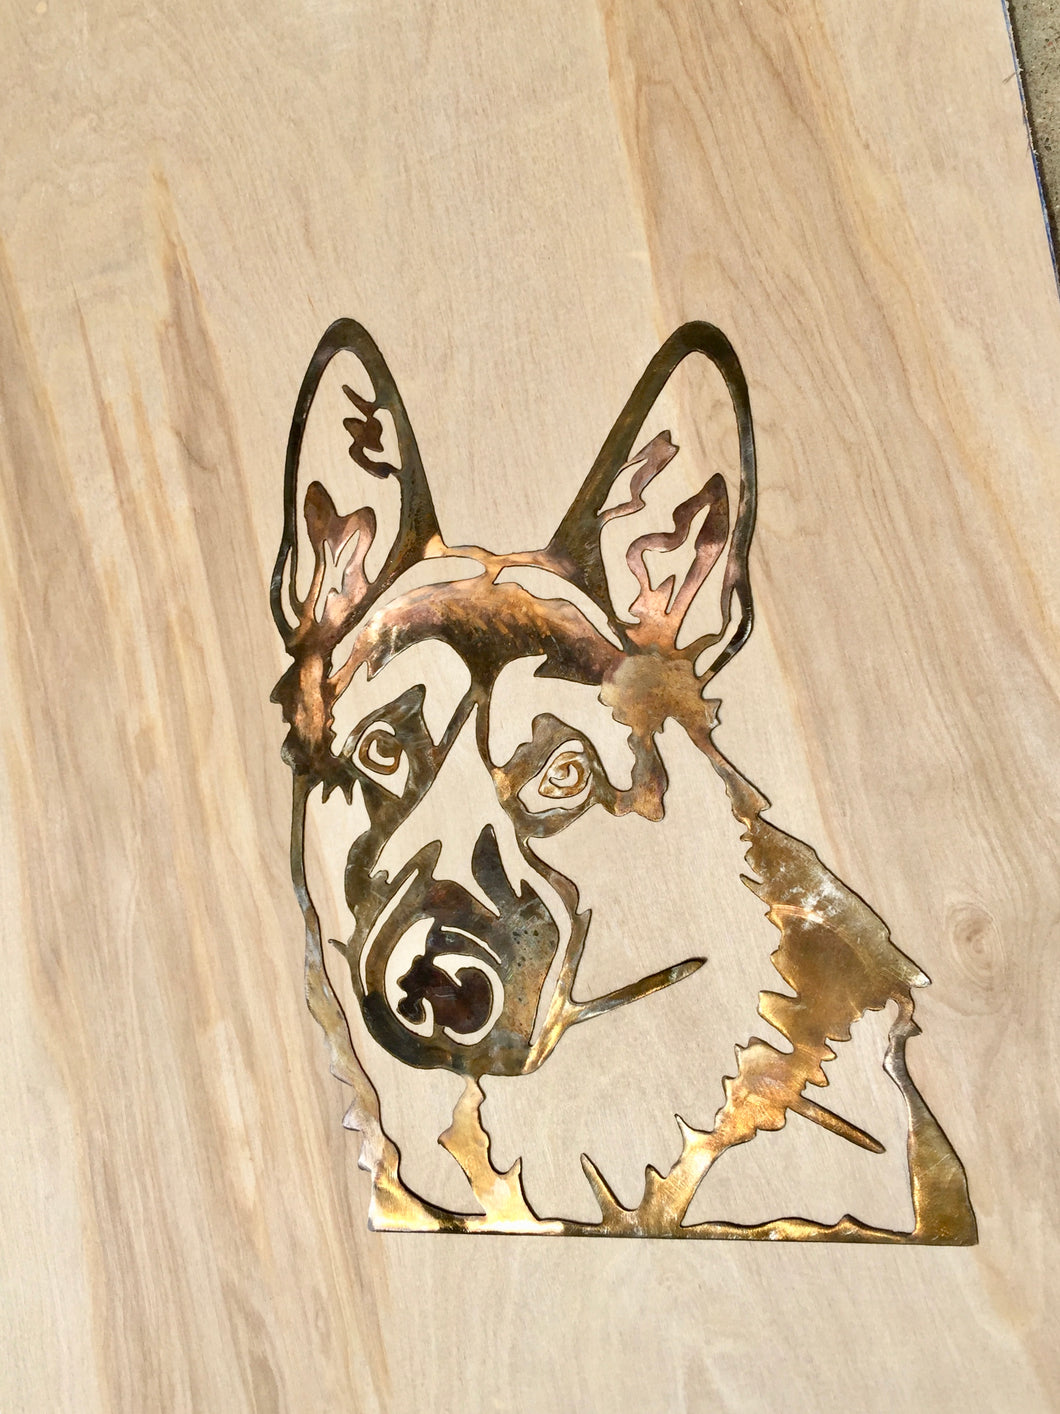 Furry Friends! - Garden & Yard Decor by Forged From The Ashes Inspirational Gifts